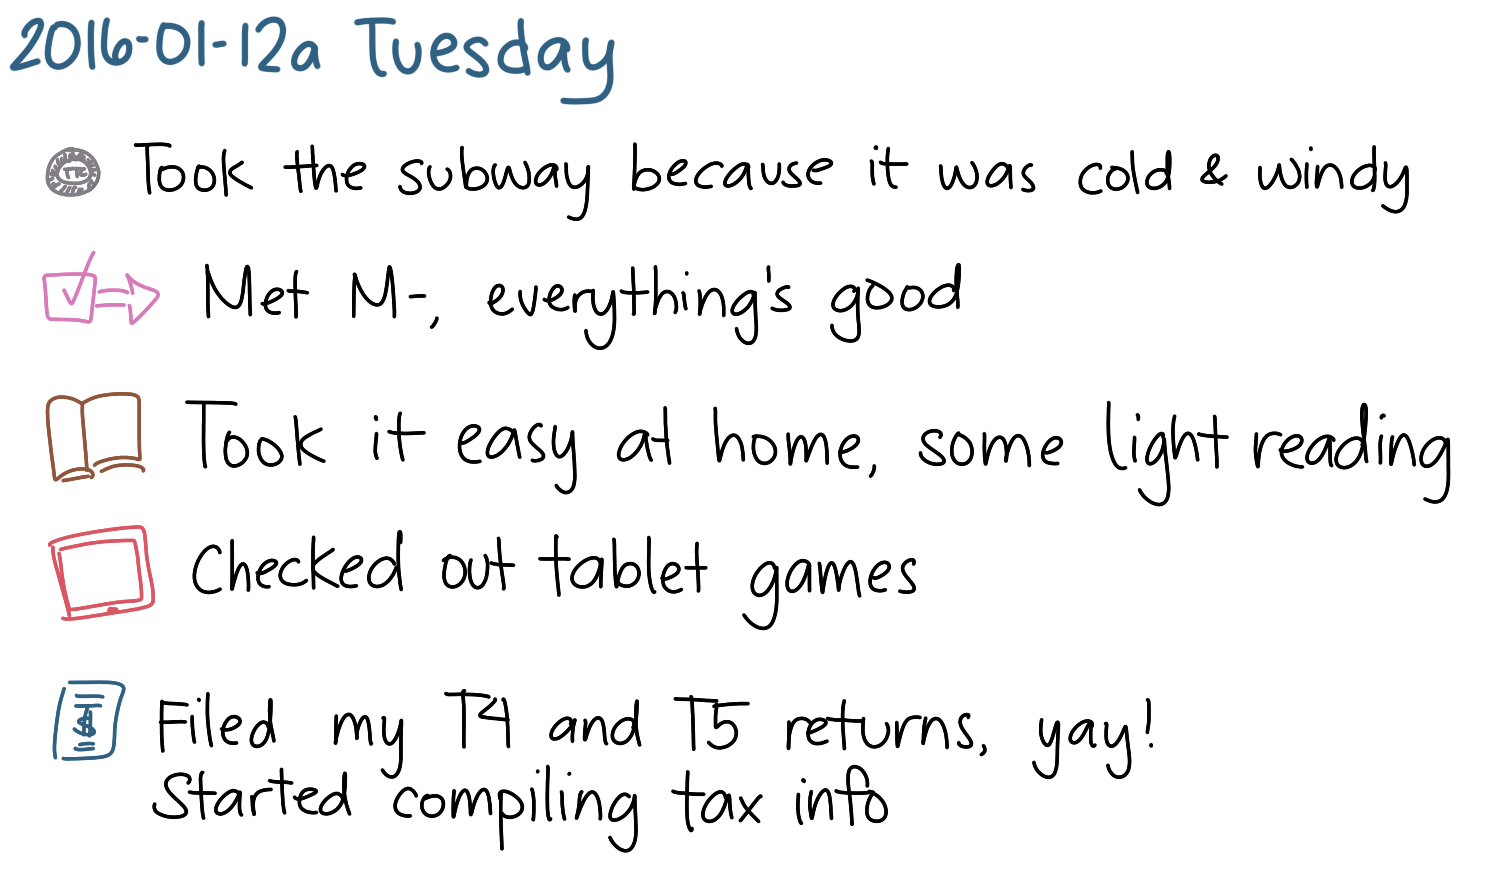 2016-01-12a Tuesday -- index card #journal.png